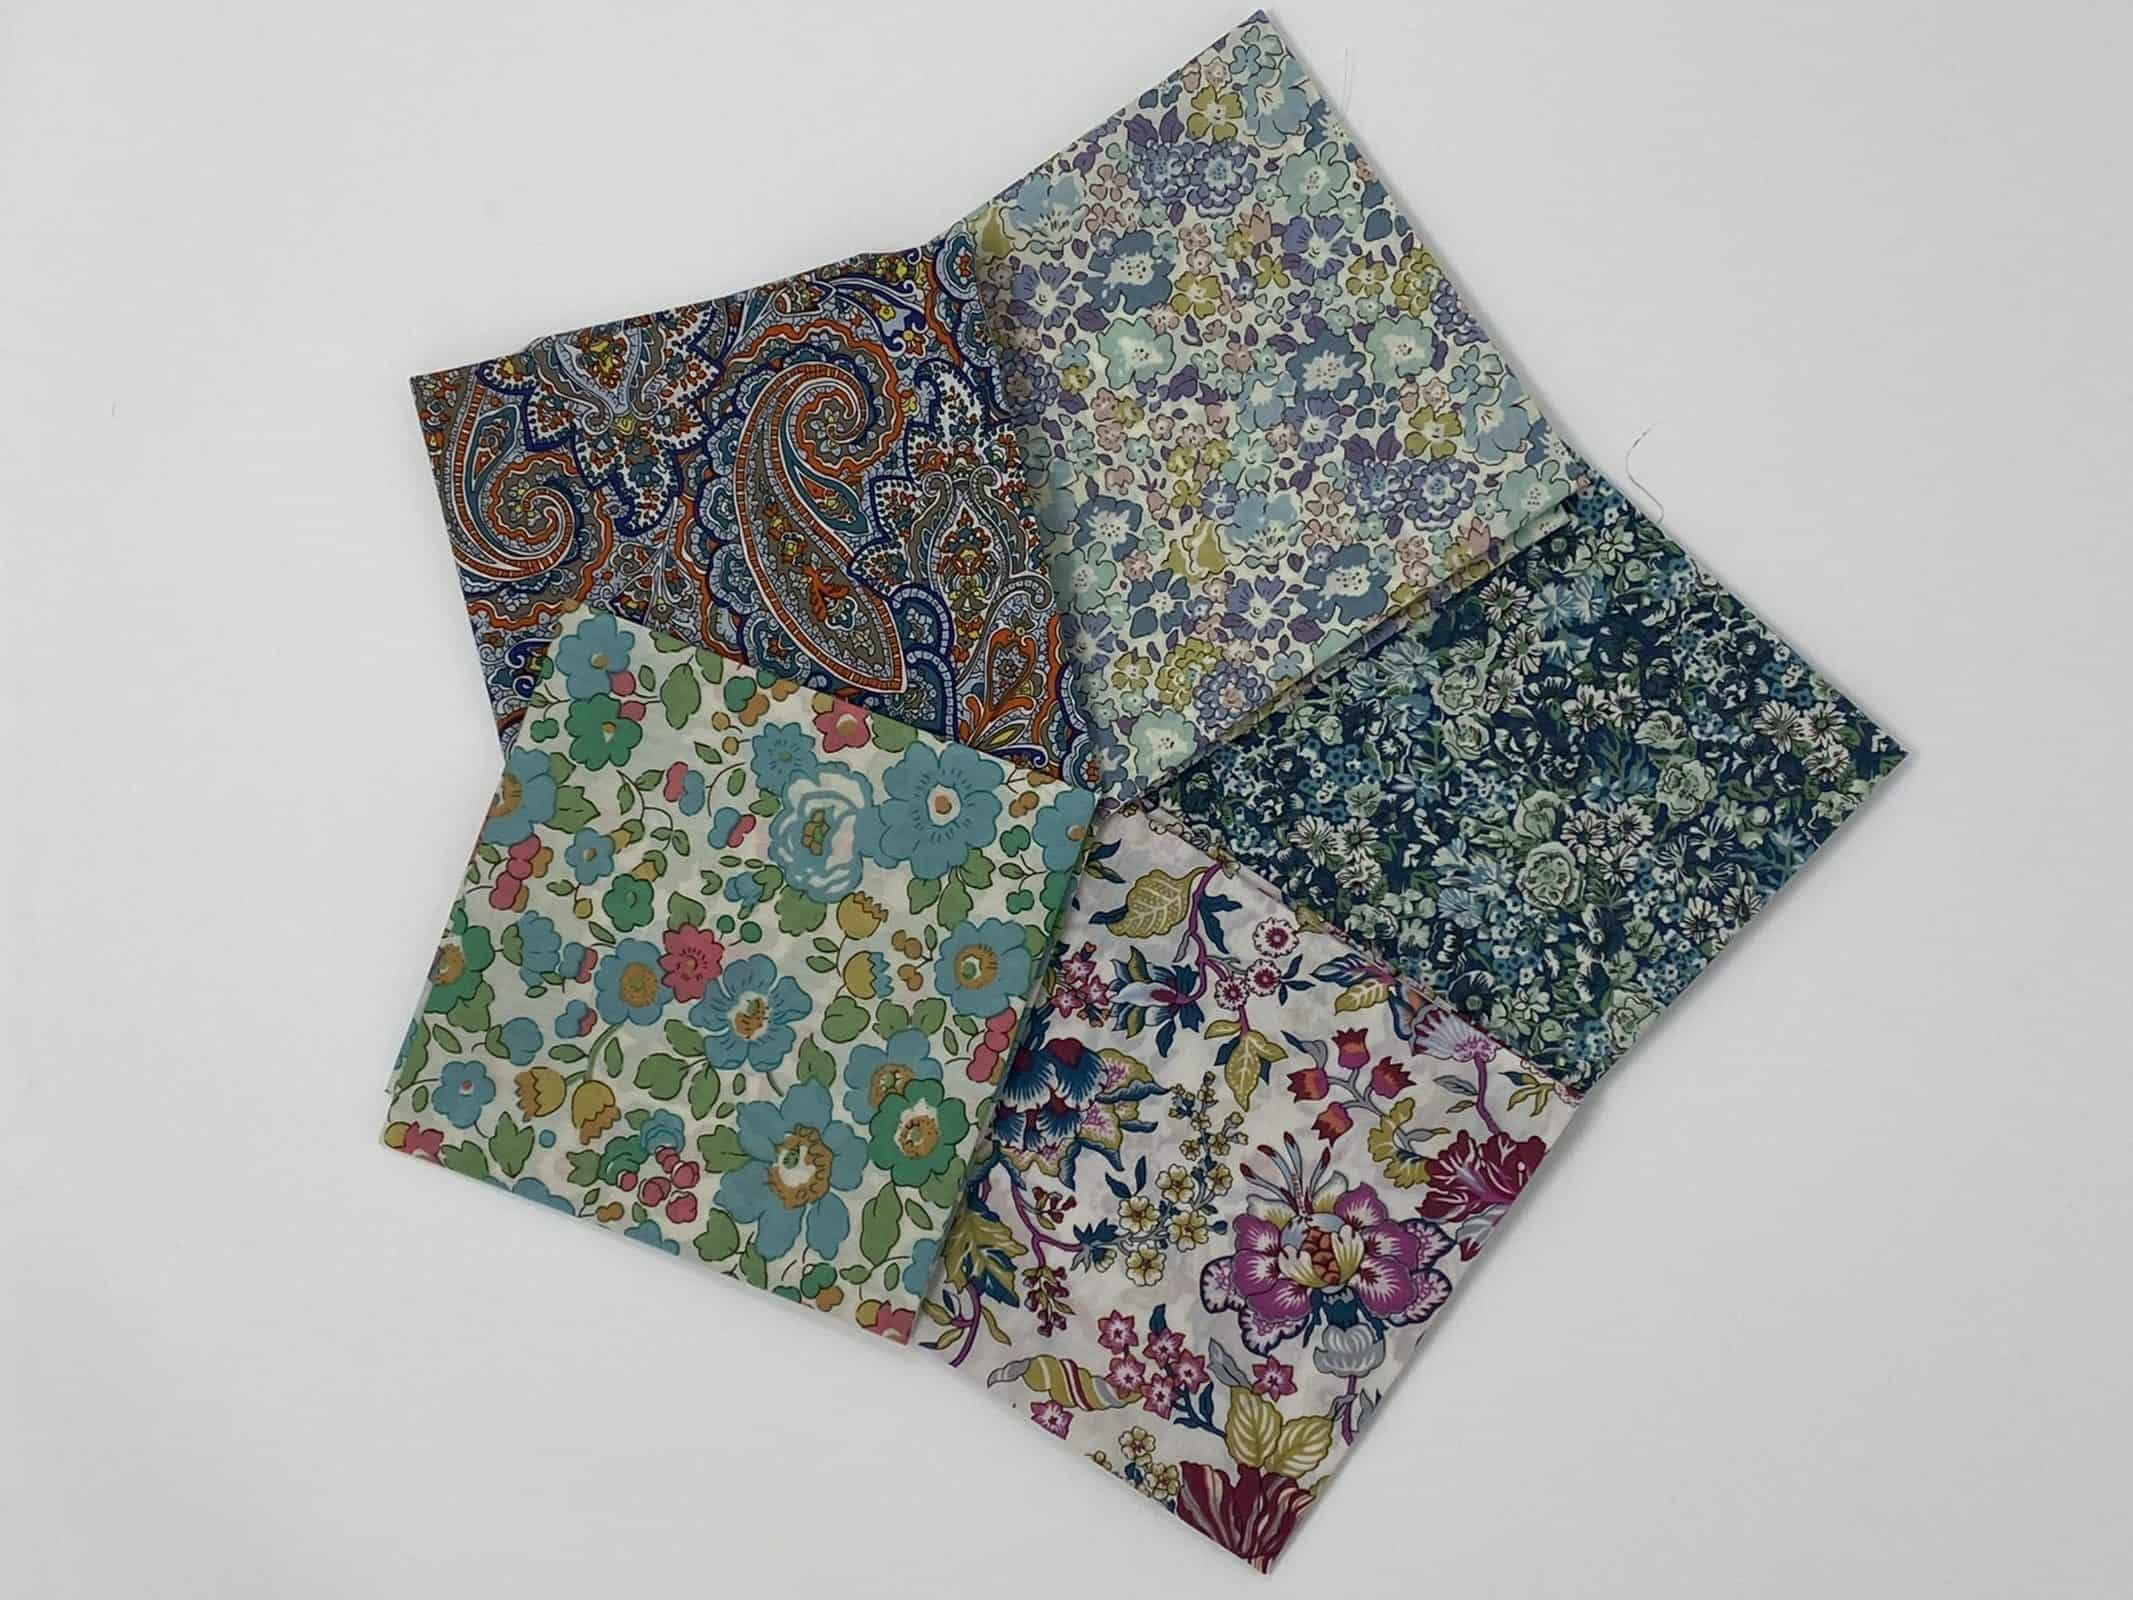 bundle of 5 Liberty of London prints in either fat quarters, fat eighths or fat sixteenths